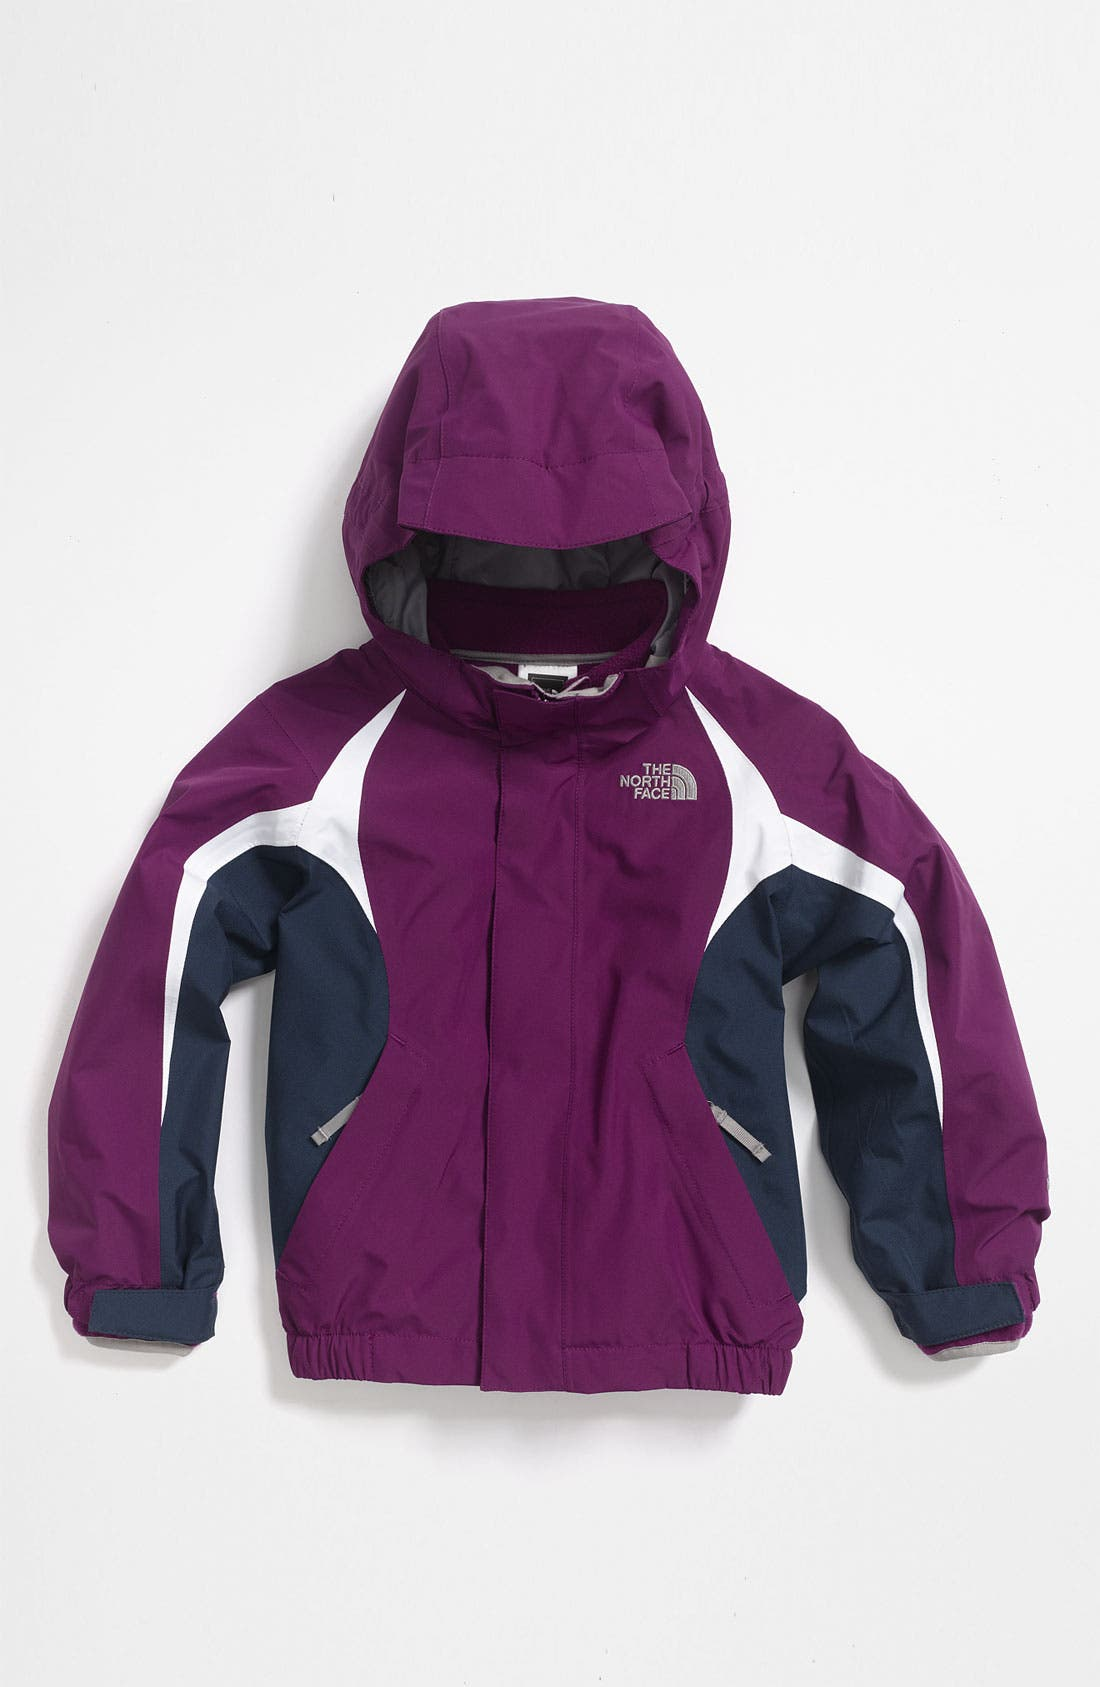 Alternate Image 1 Selected - The North Face 'Mountain View Triclimate®' Jacket (Toddler) (Nordstrom Exclusive)